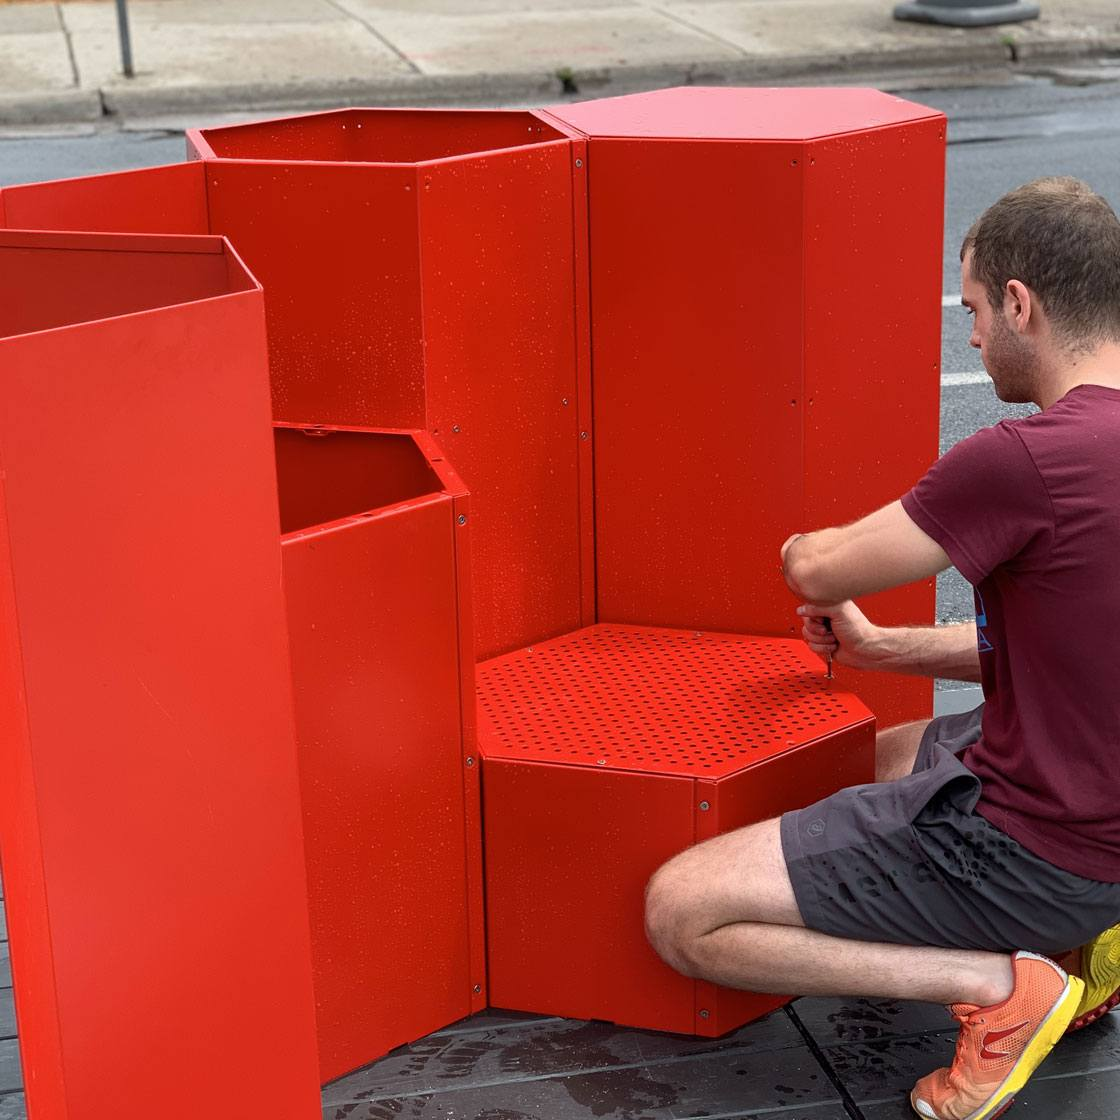 Someone constructing a modular seating-scape